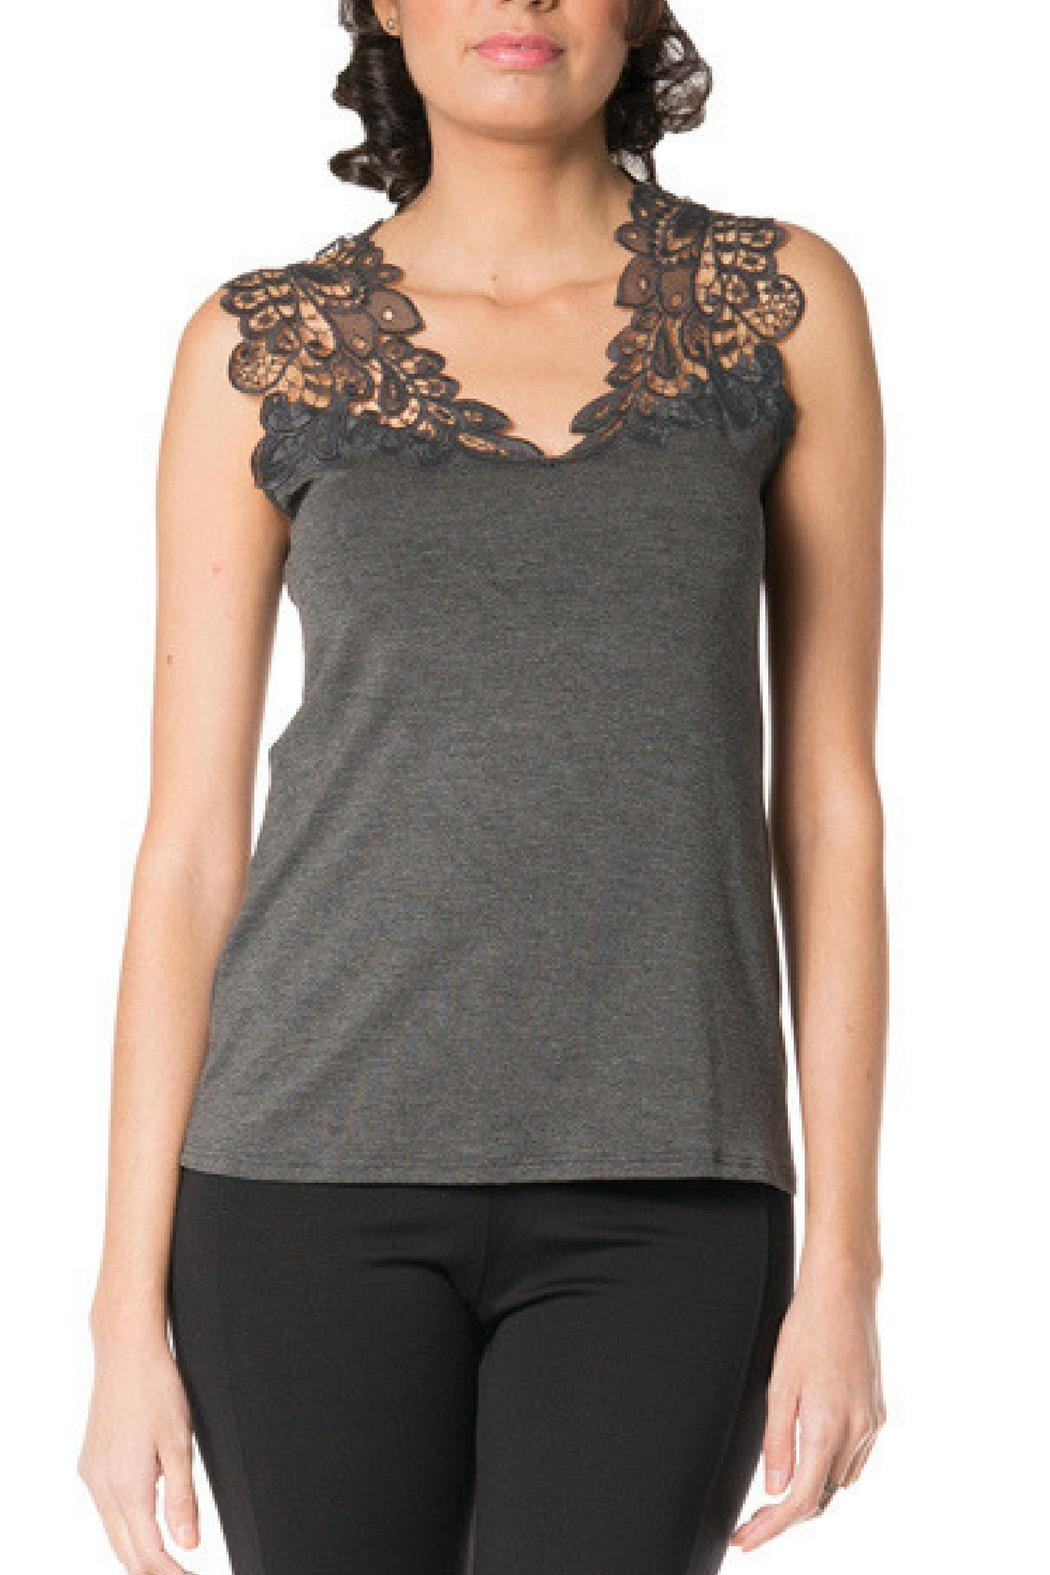 Arianne Teri Reversible Top - Front Cropped Image